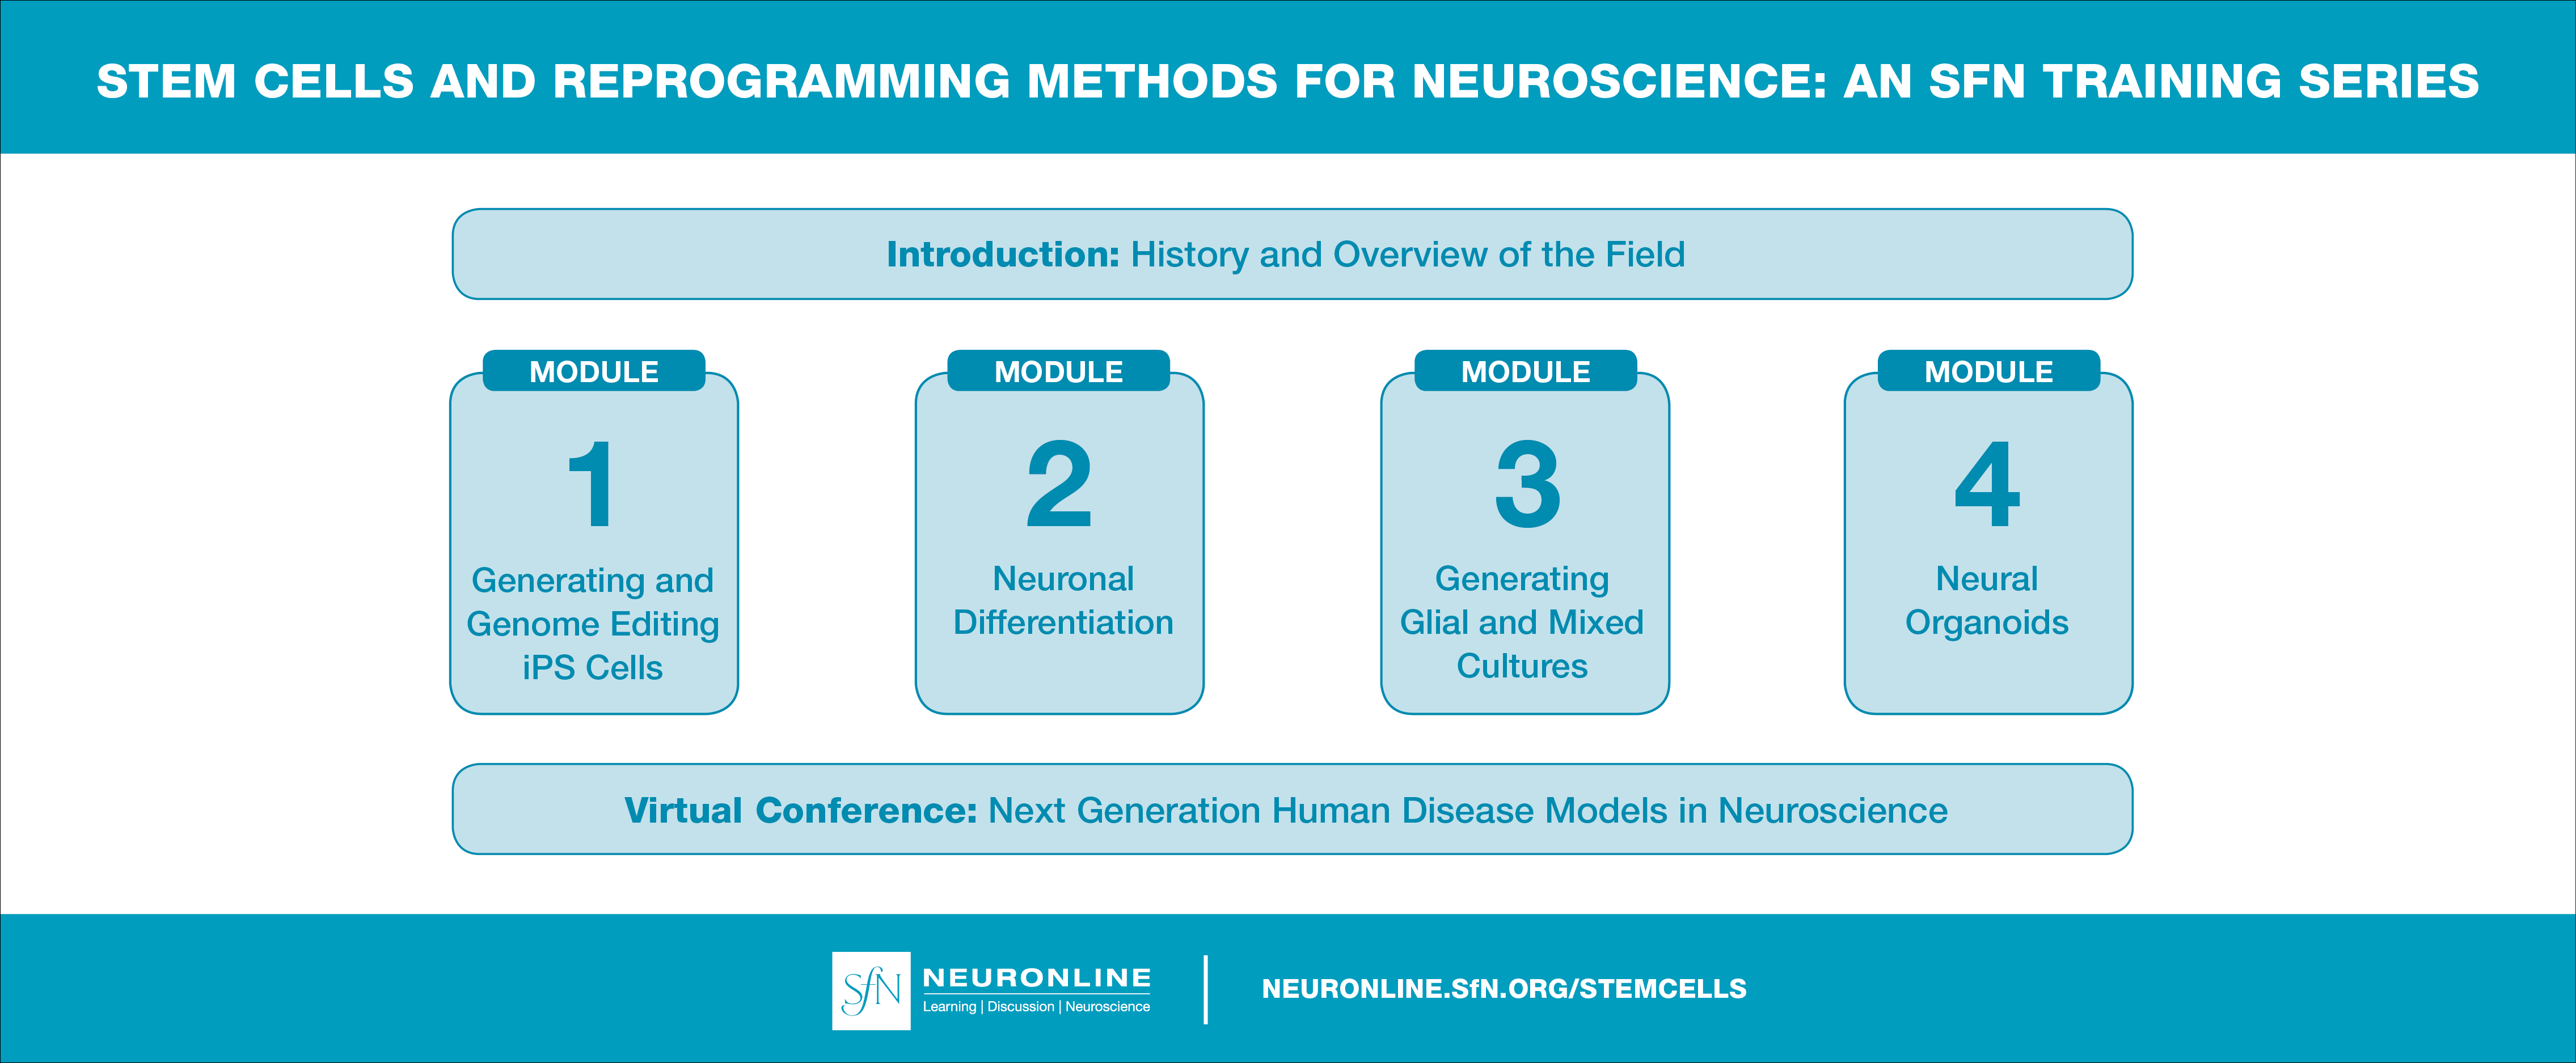 Title card displaying the layout of SfN's Training Series: Stem Cells and Reprogramming Methods for Neuroscience